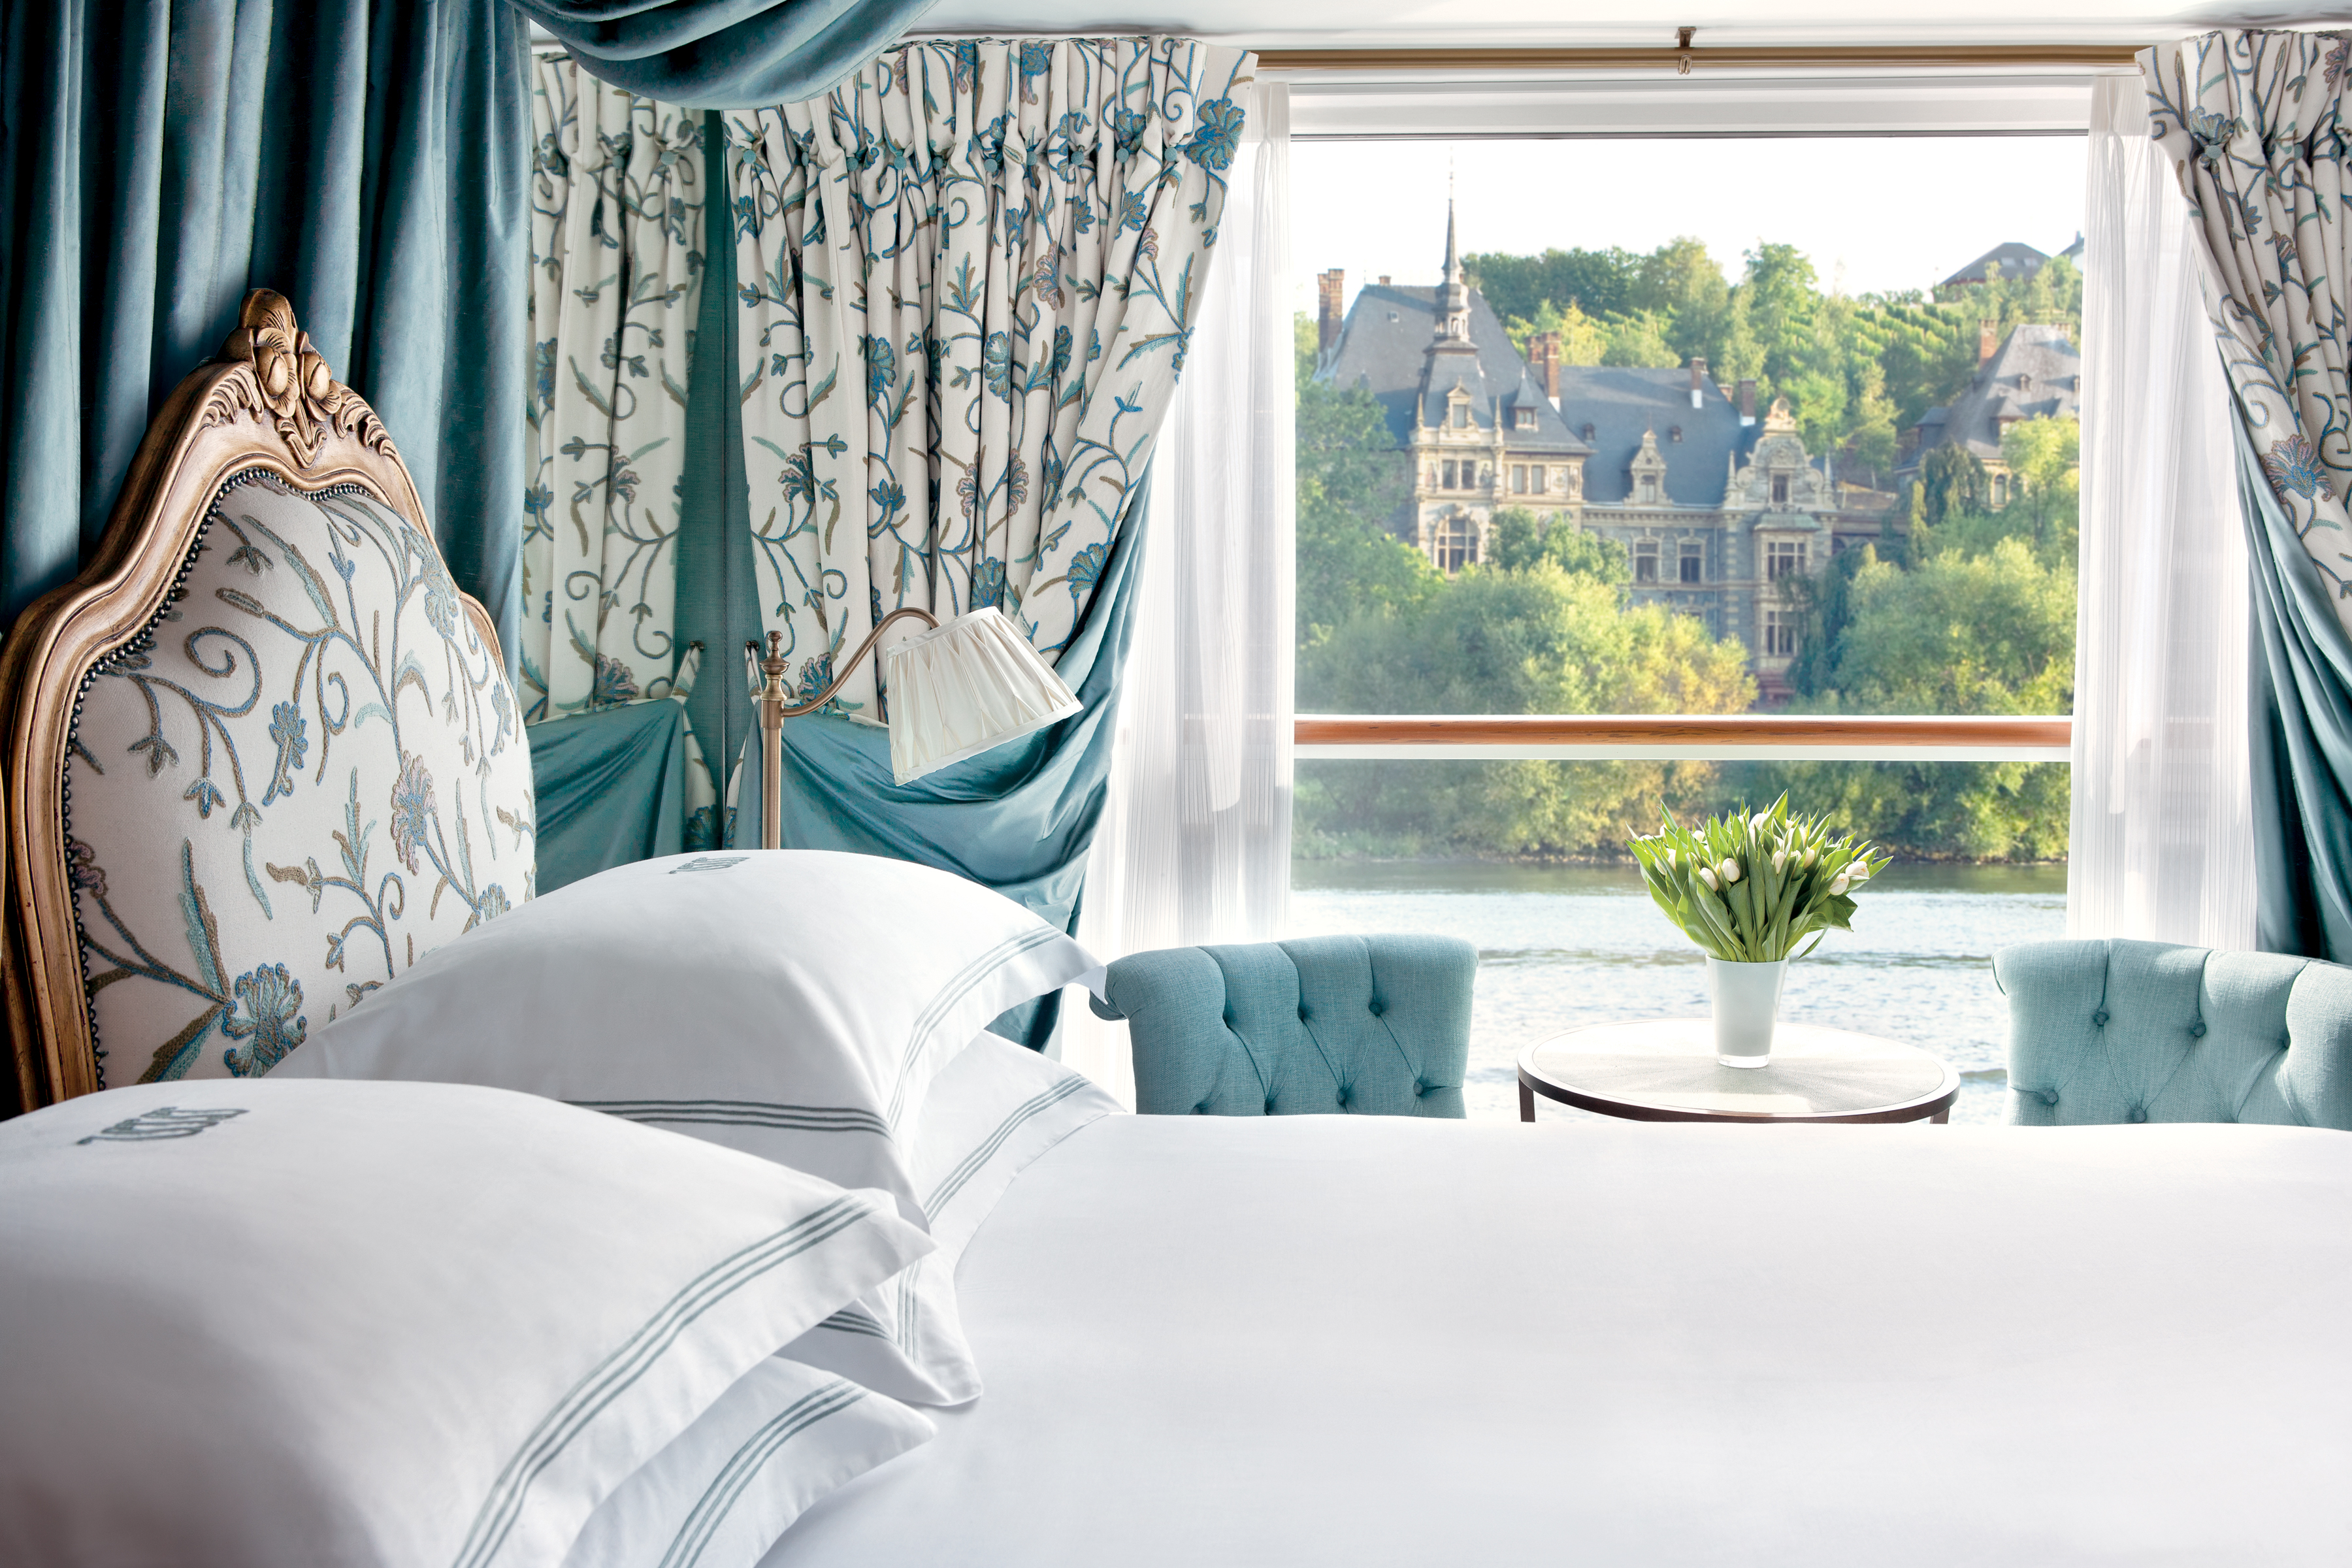 UNIWORLD Boutique River Cruises SS Antoinette Accommodation Stateroom Category 2.jpg